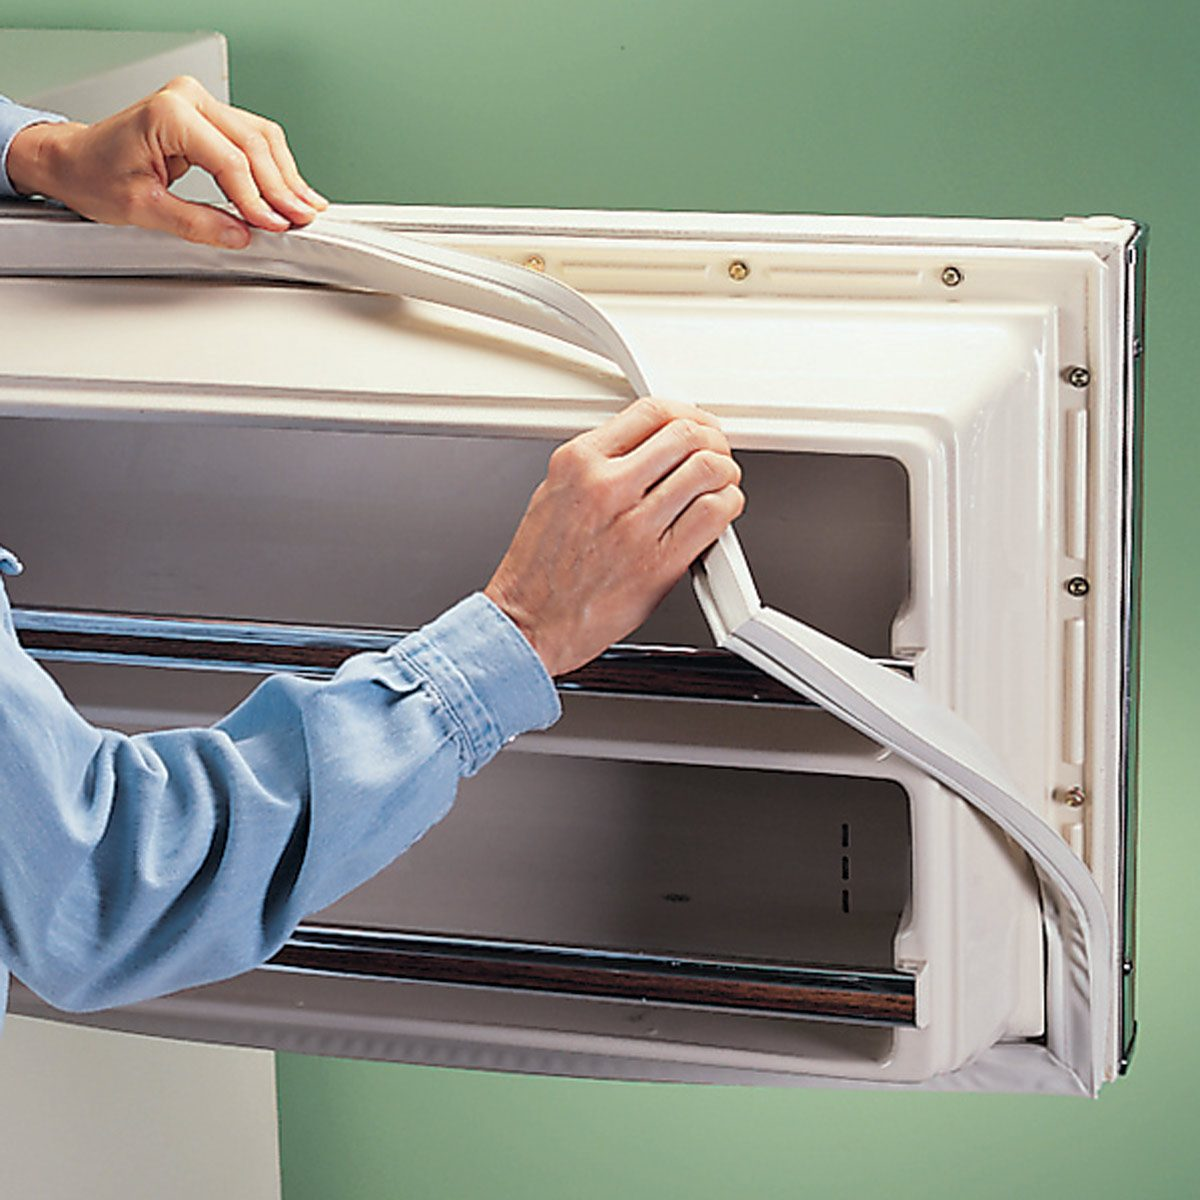 replace refrigerator door gasket